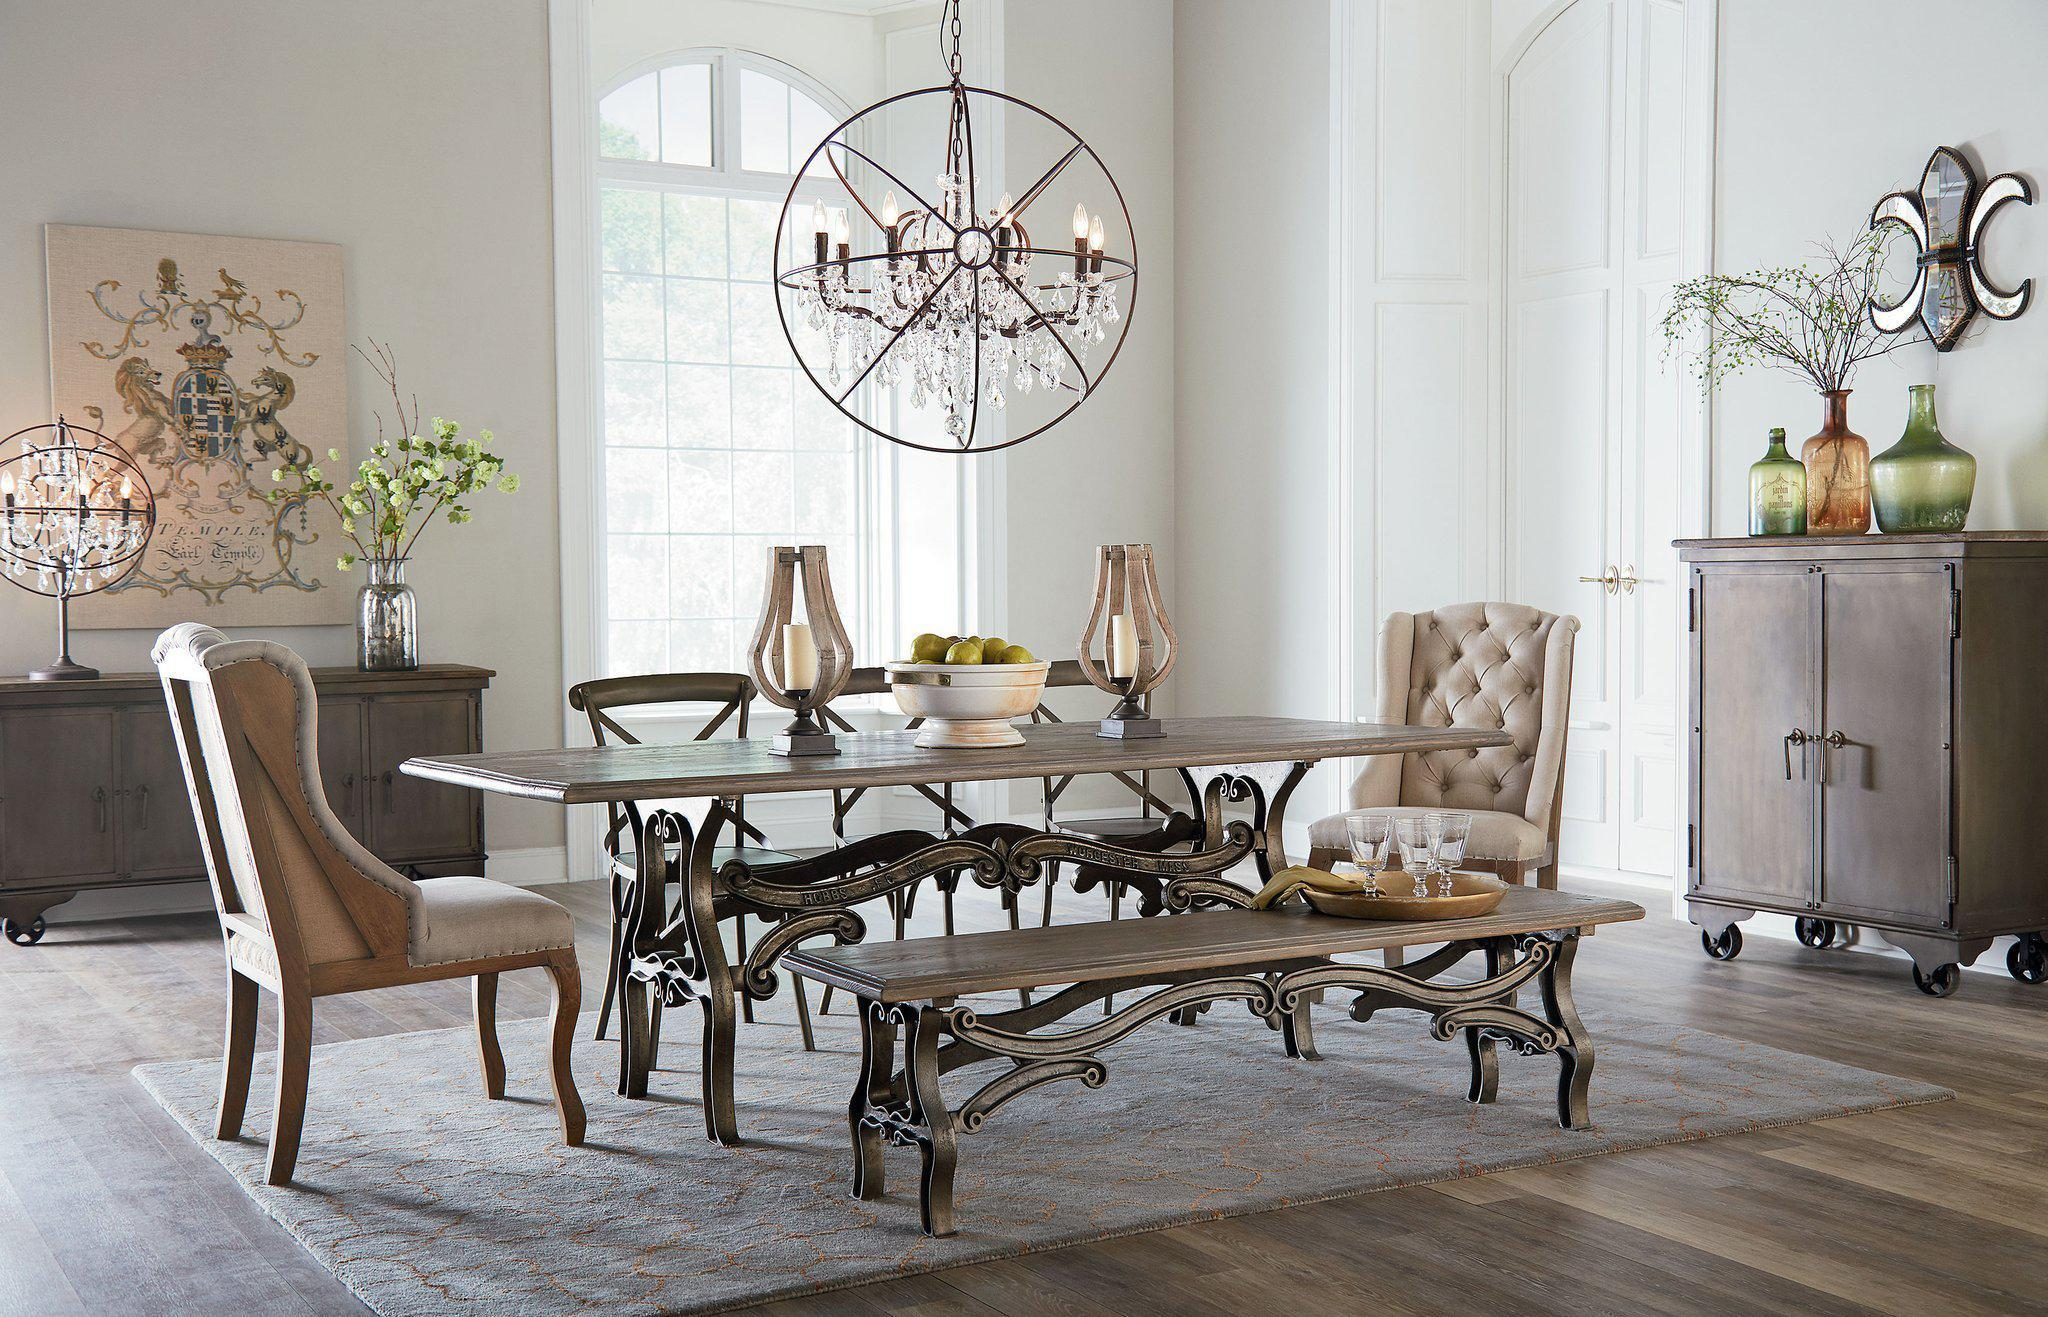 Anderson French Industrial Dining Table